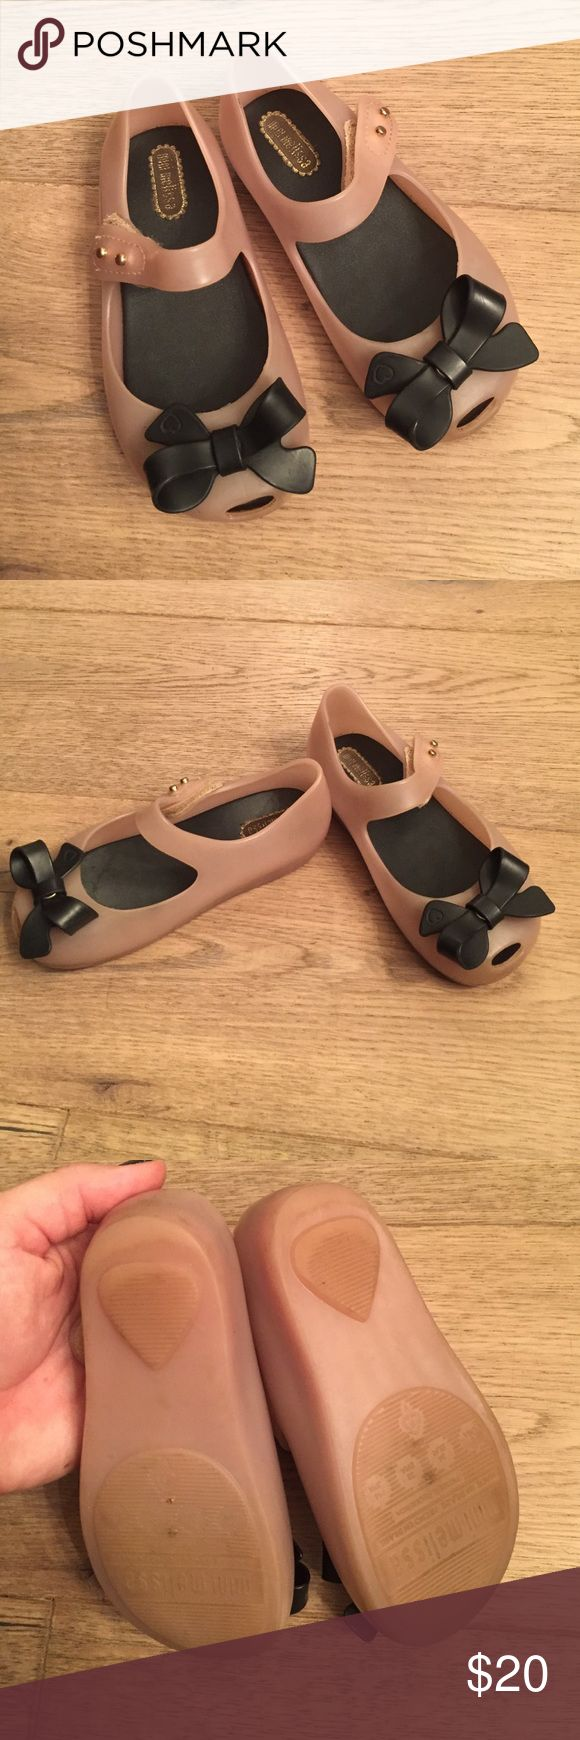 Mini Melissa jelly shoes These are amazing!! My girls love these comfy jellies and they smell so good too! Normal wear but they still look GREAT! Size 8 toddler Mini Melissa Shoes Dress Shoes